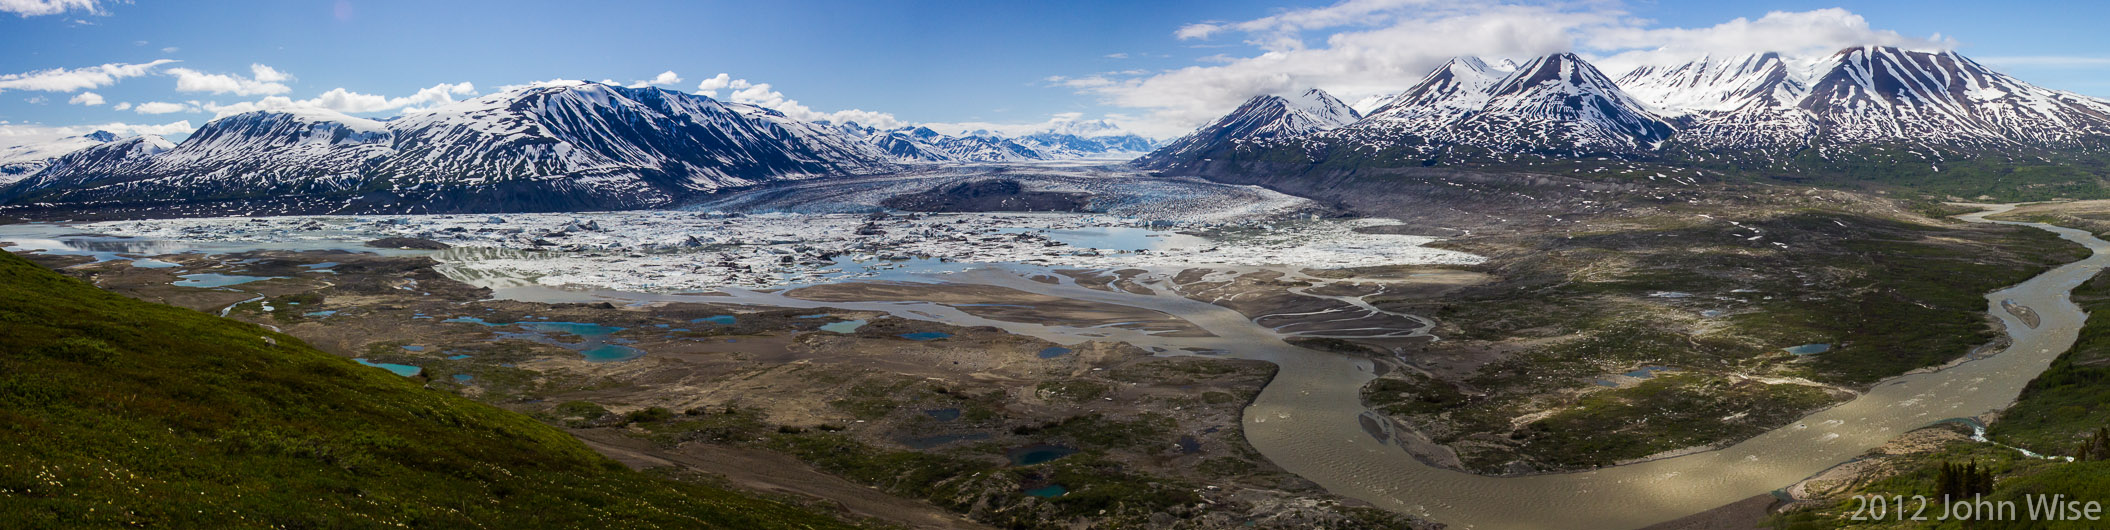 The view of Lowell Glacier and its lake from Goatherd Mountain in Kluane National Park Yukon, Canada